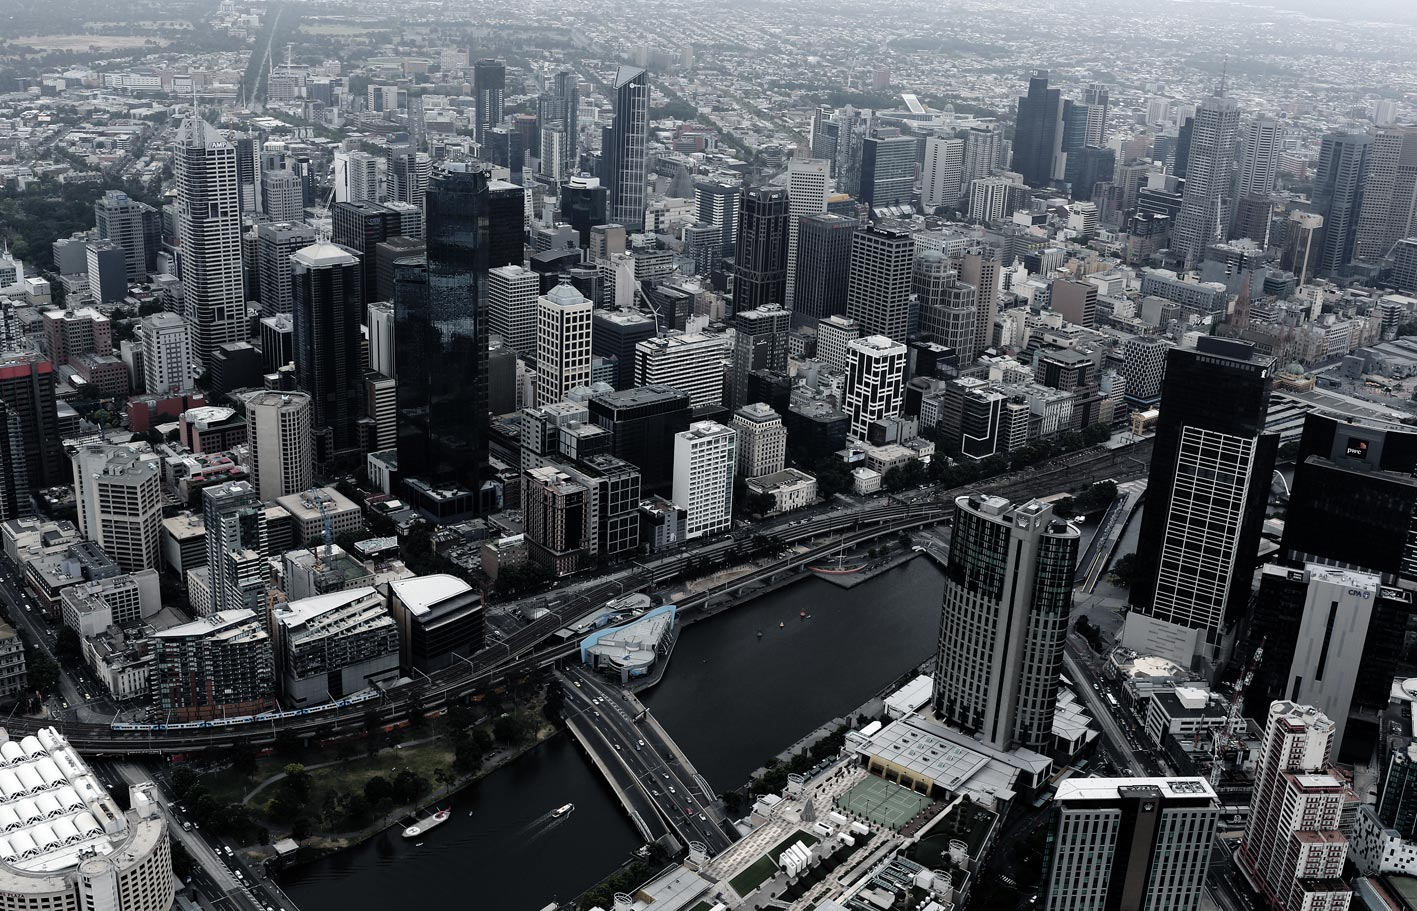 We are an executive recruitment and advisory firm located in Melbourne